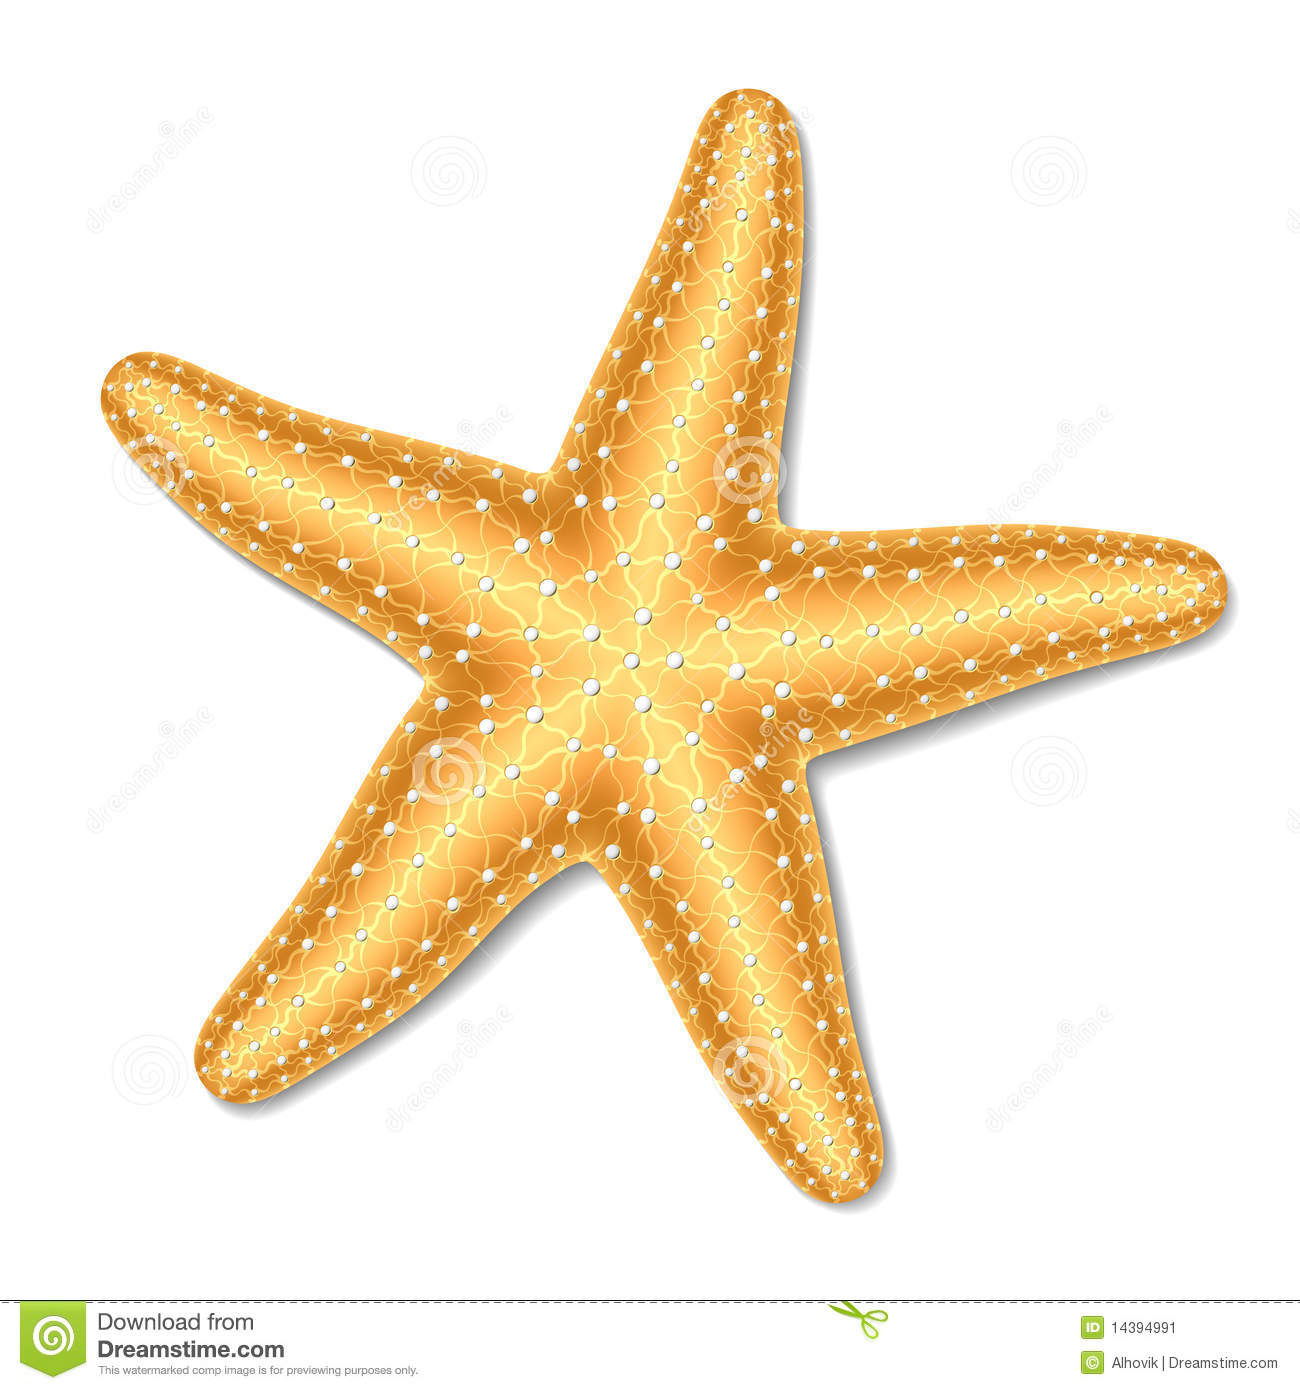 Starfish clipart #1058 16292 Starfish Clipart For